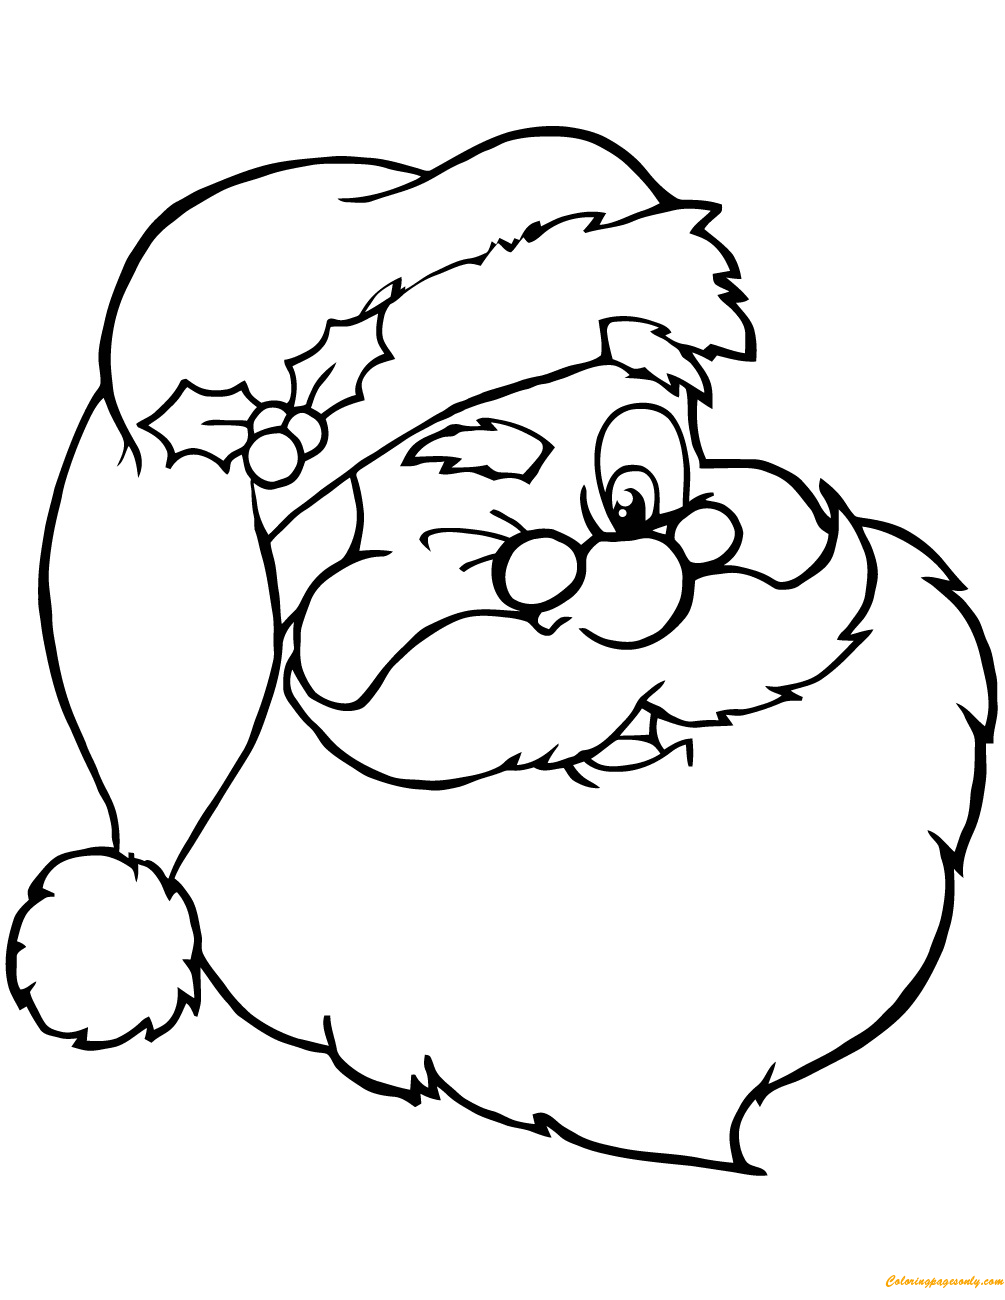 Winking santa claus coloring page free coloring pages online for Santa claus coloring pages online